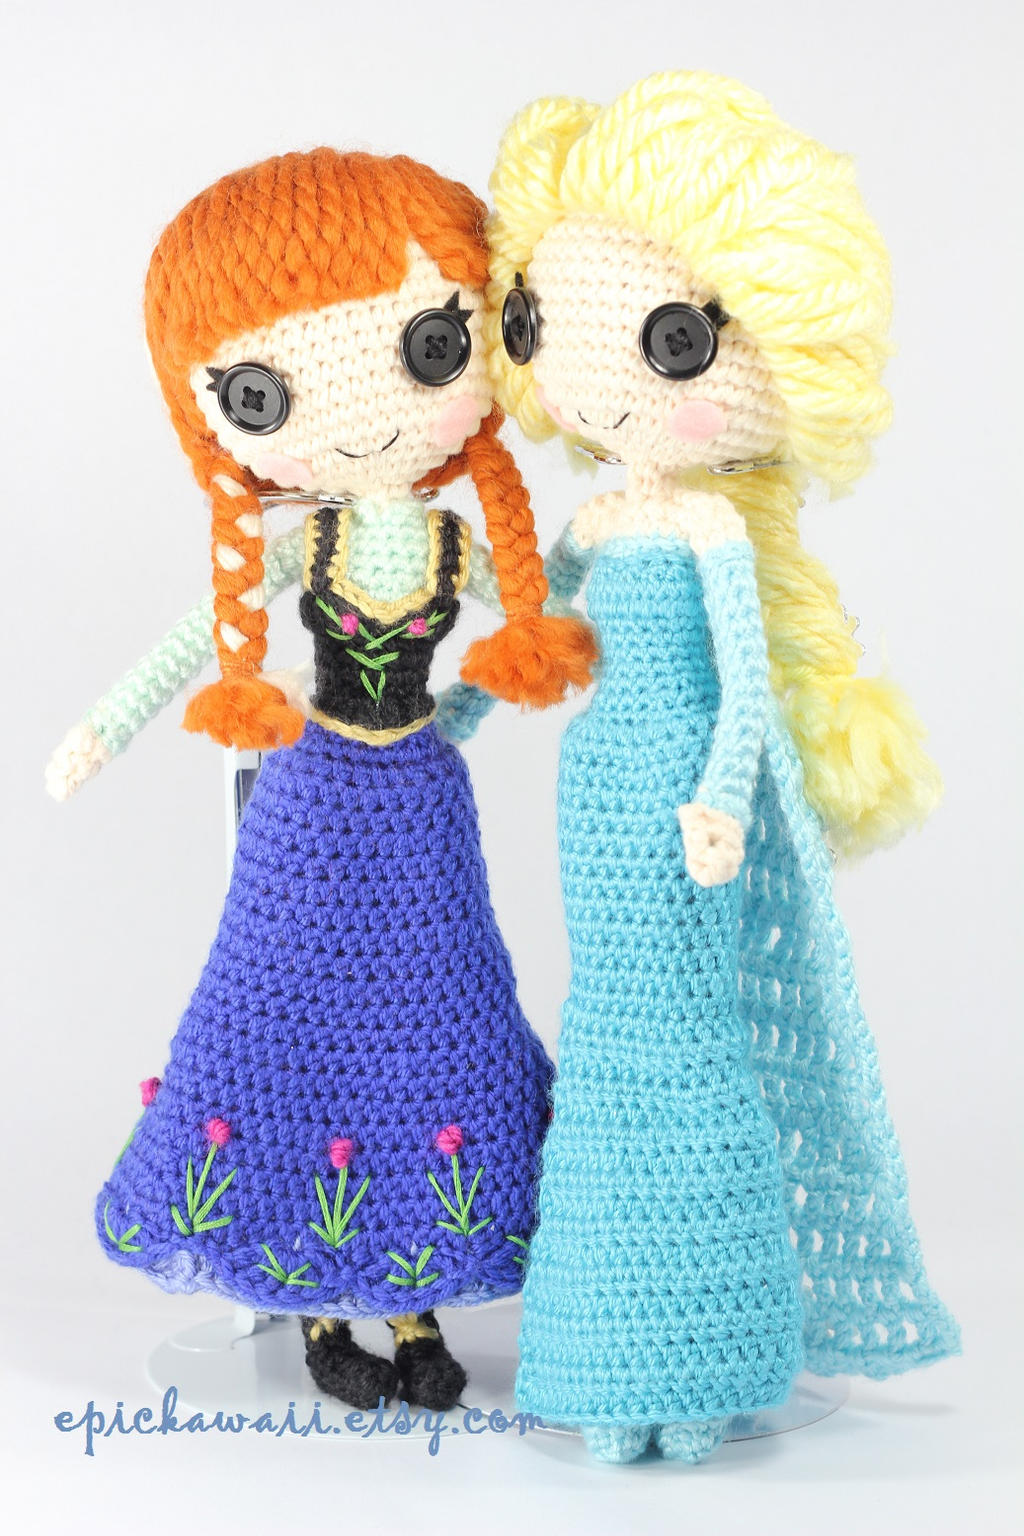 Elsa Amigurumi Patron Gratis : Anna And Elsa Crochet Amigurumi Dolls by Npantz22 on ...